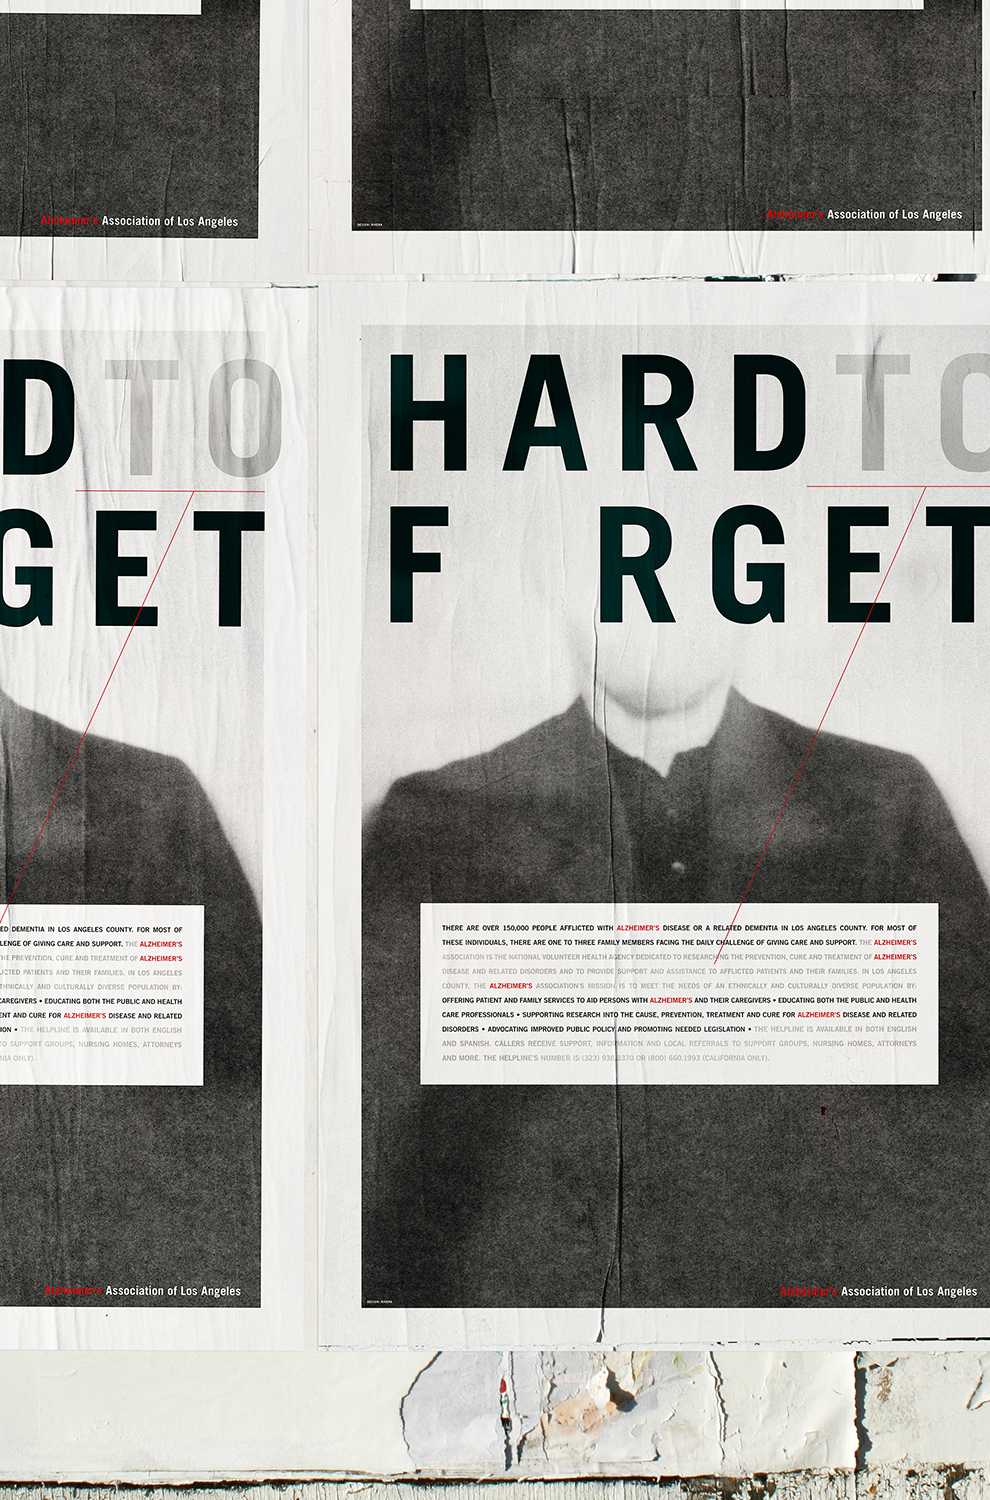 Hard_To_Forget_Gang_Poster_v4